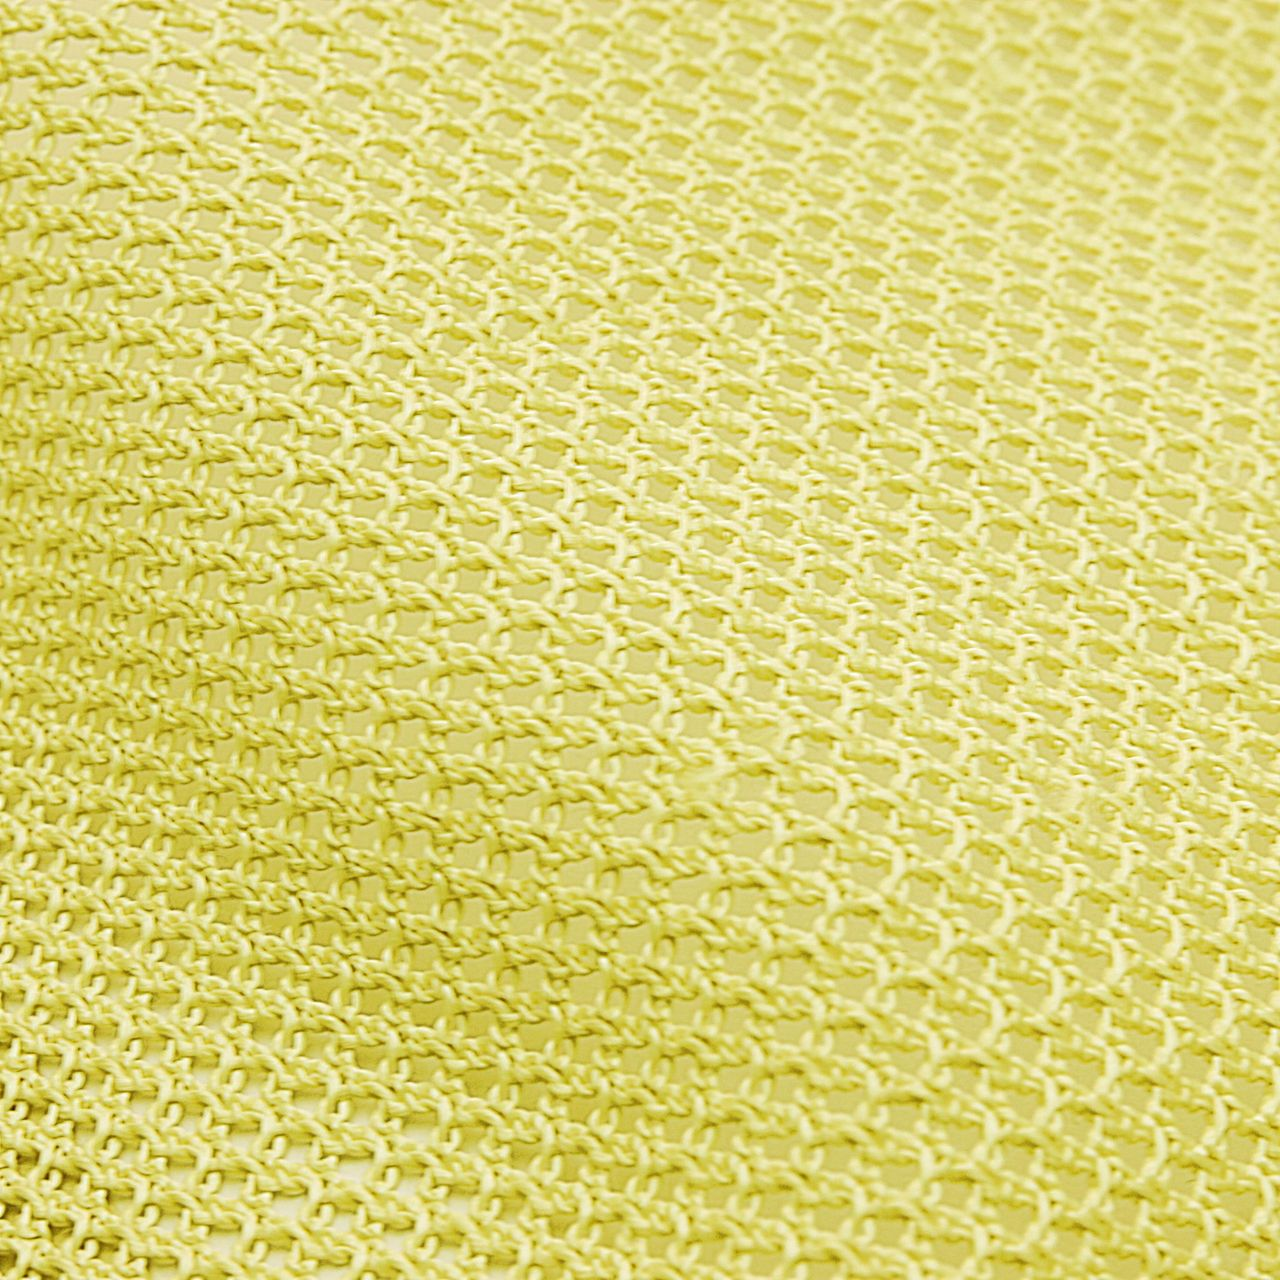 Abrasion Resistant Net Fabric